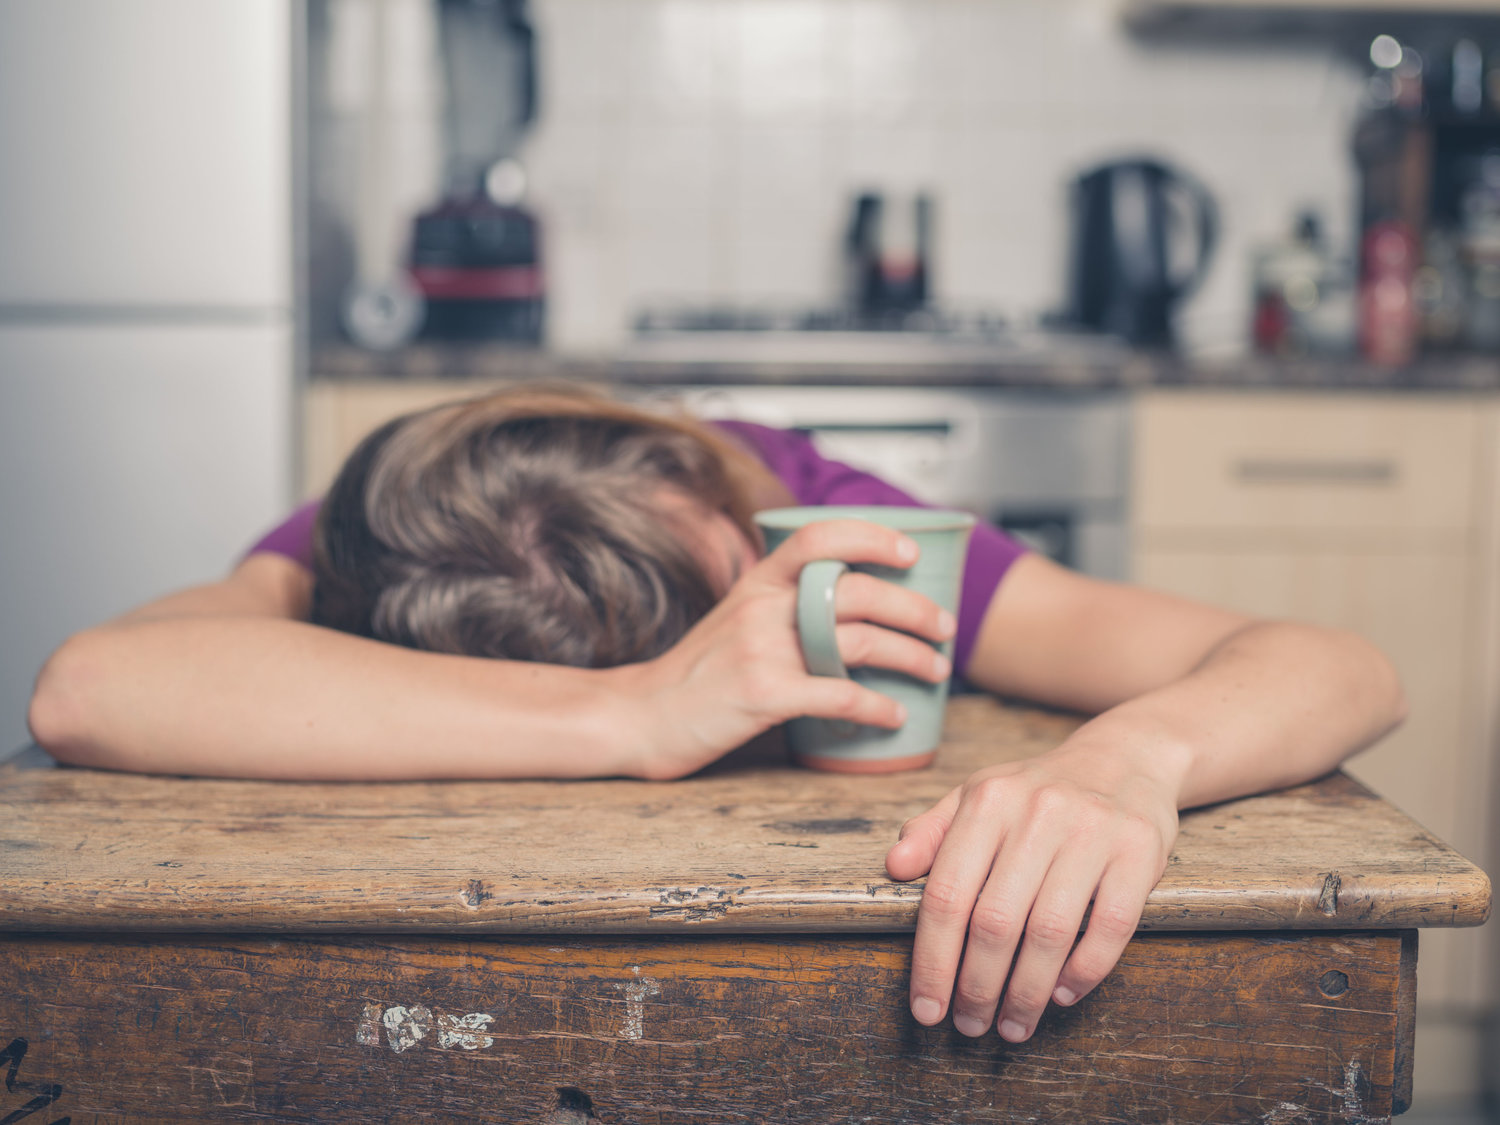 43388665 - a tired young woman is having a cup of tea and is resting her head on a table